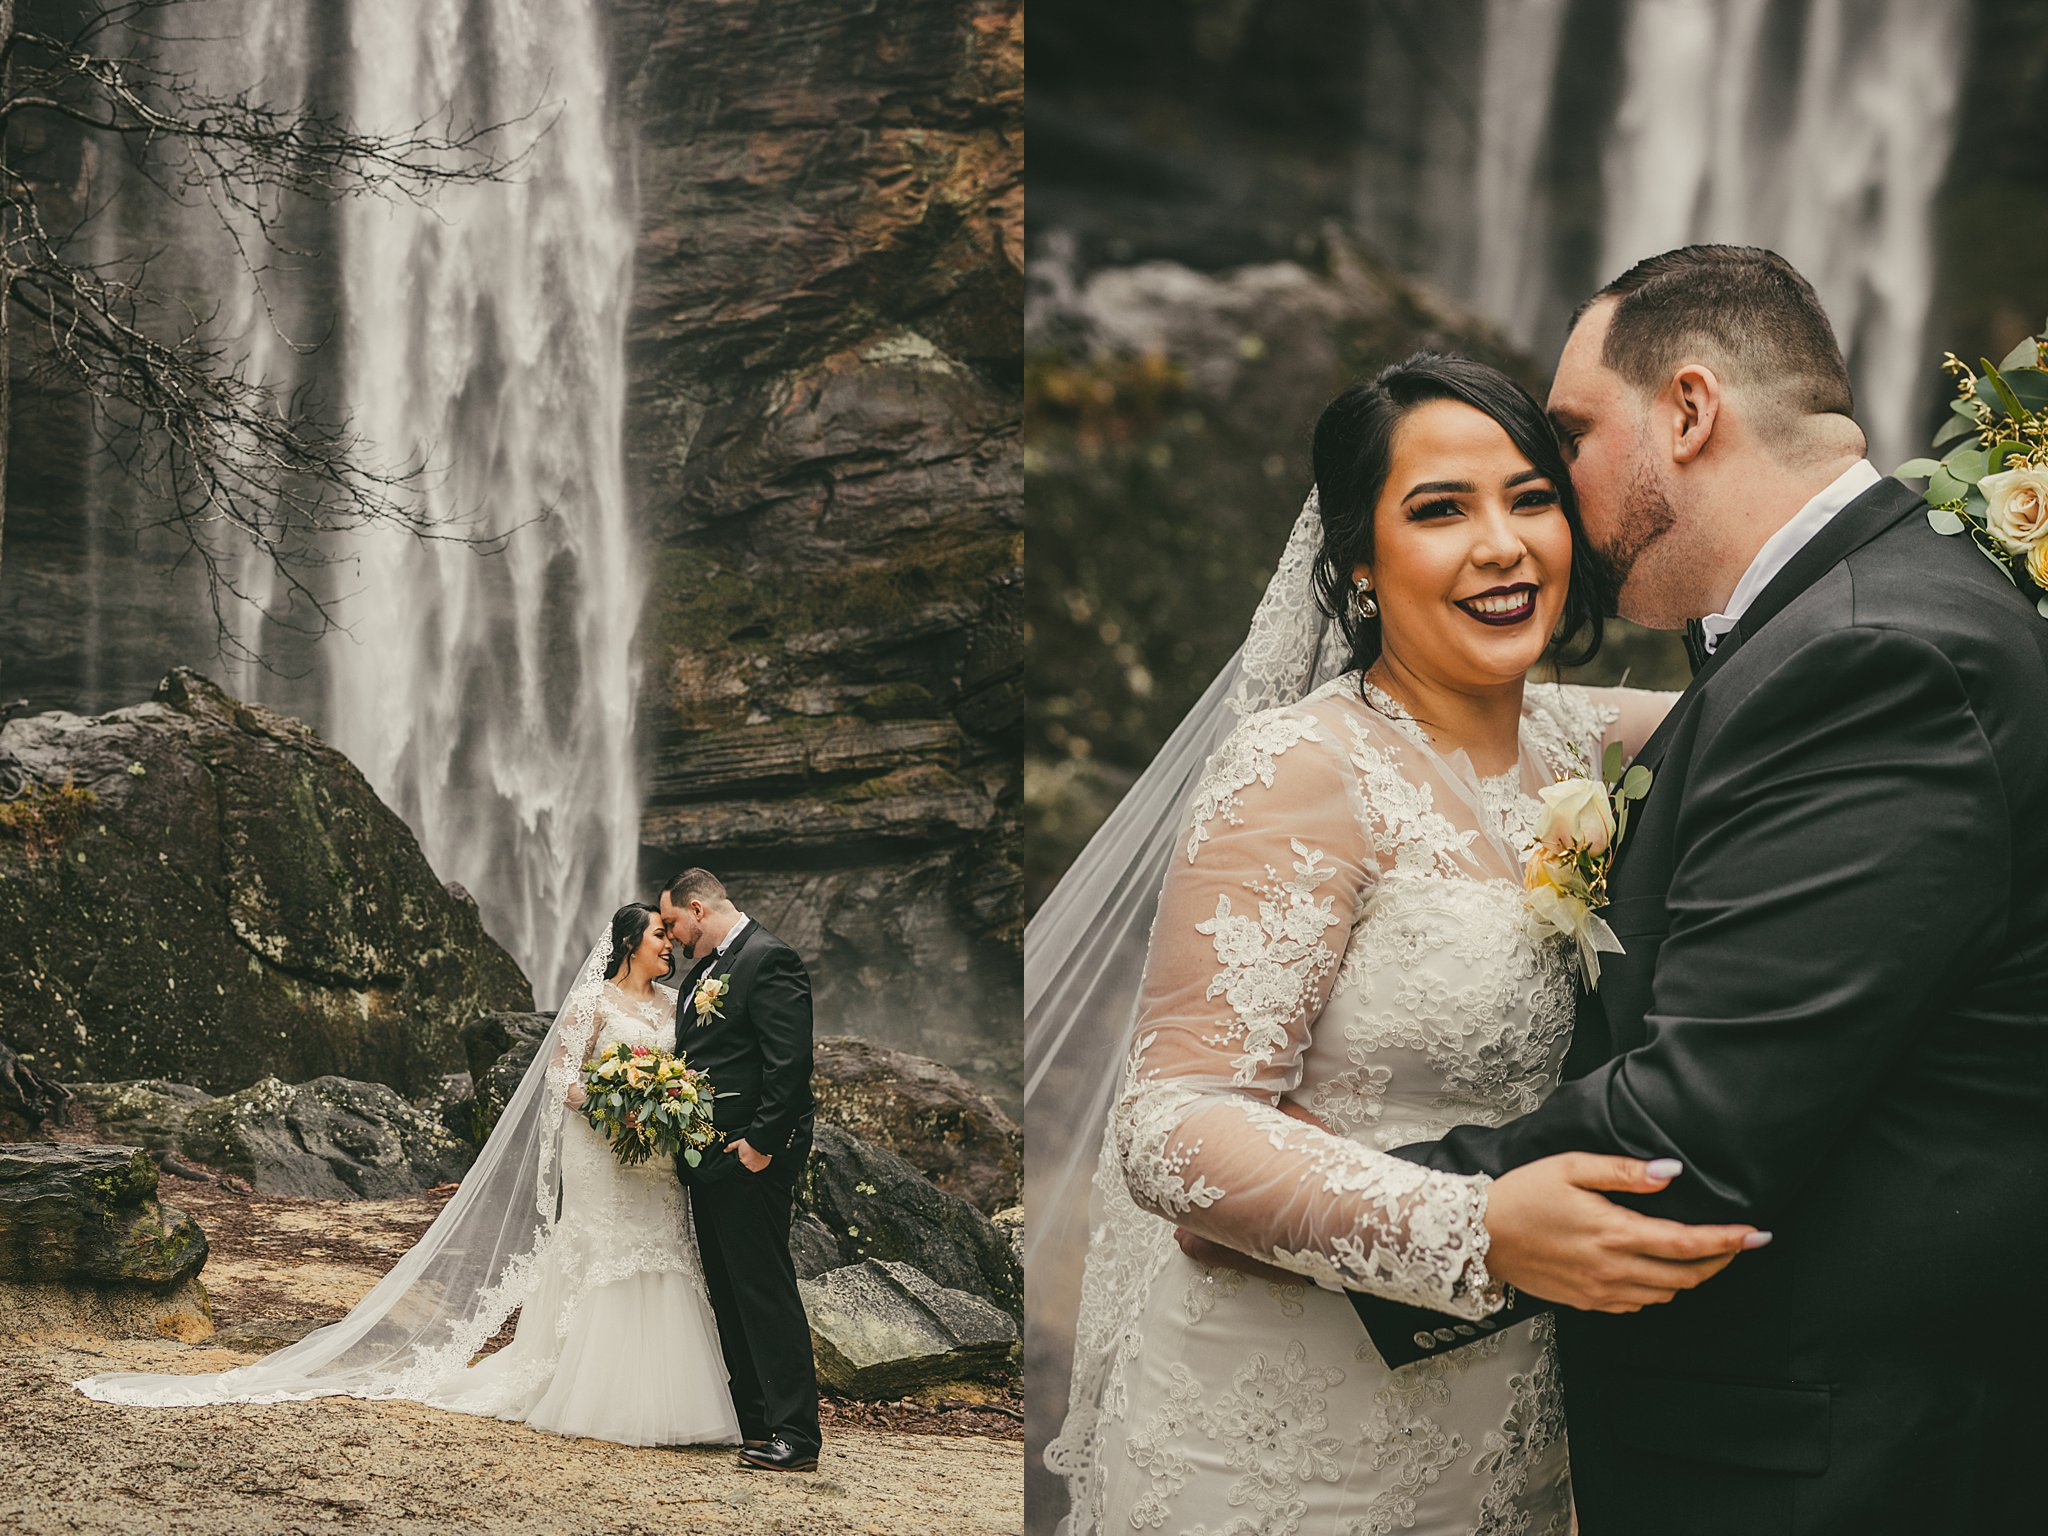 AtlantaWeddingPhotographers Toccoa Falls Destination Waterfall Wedding